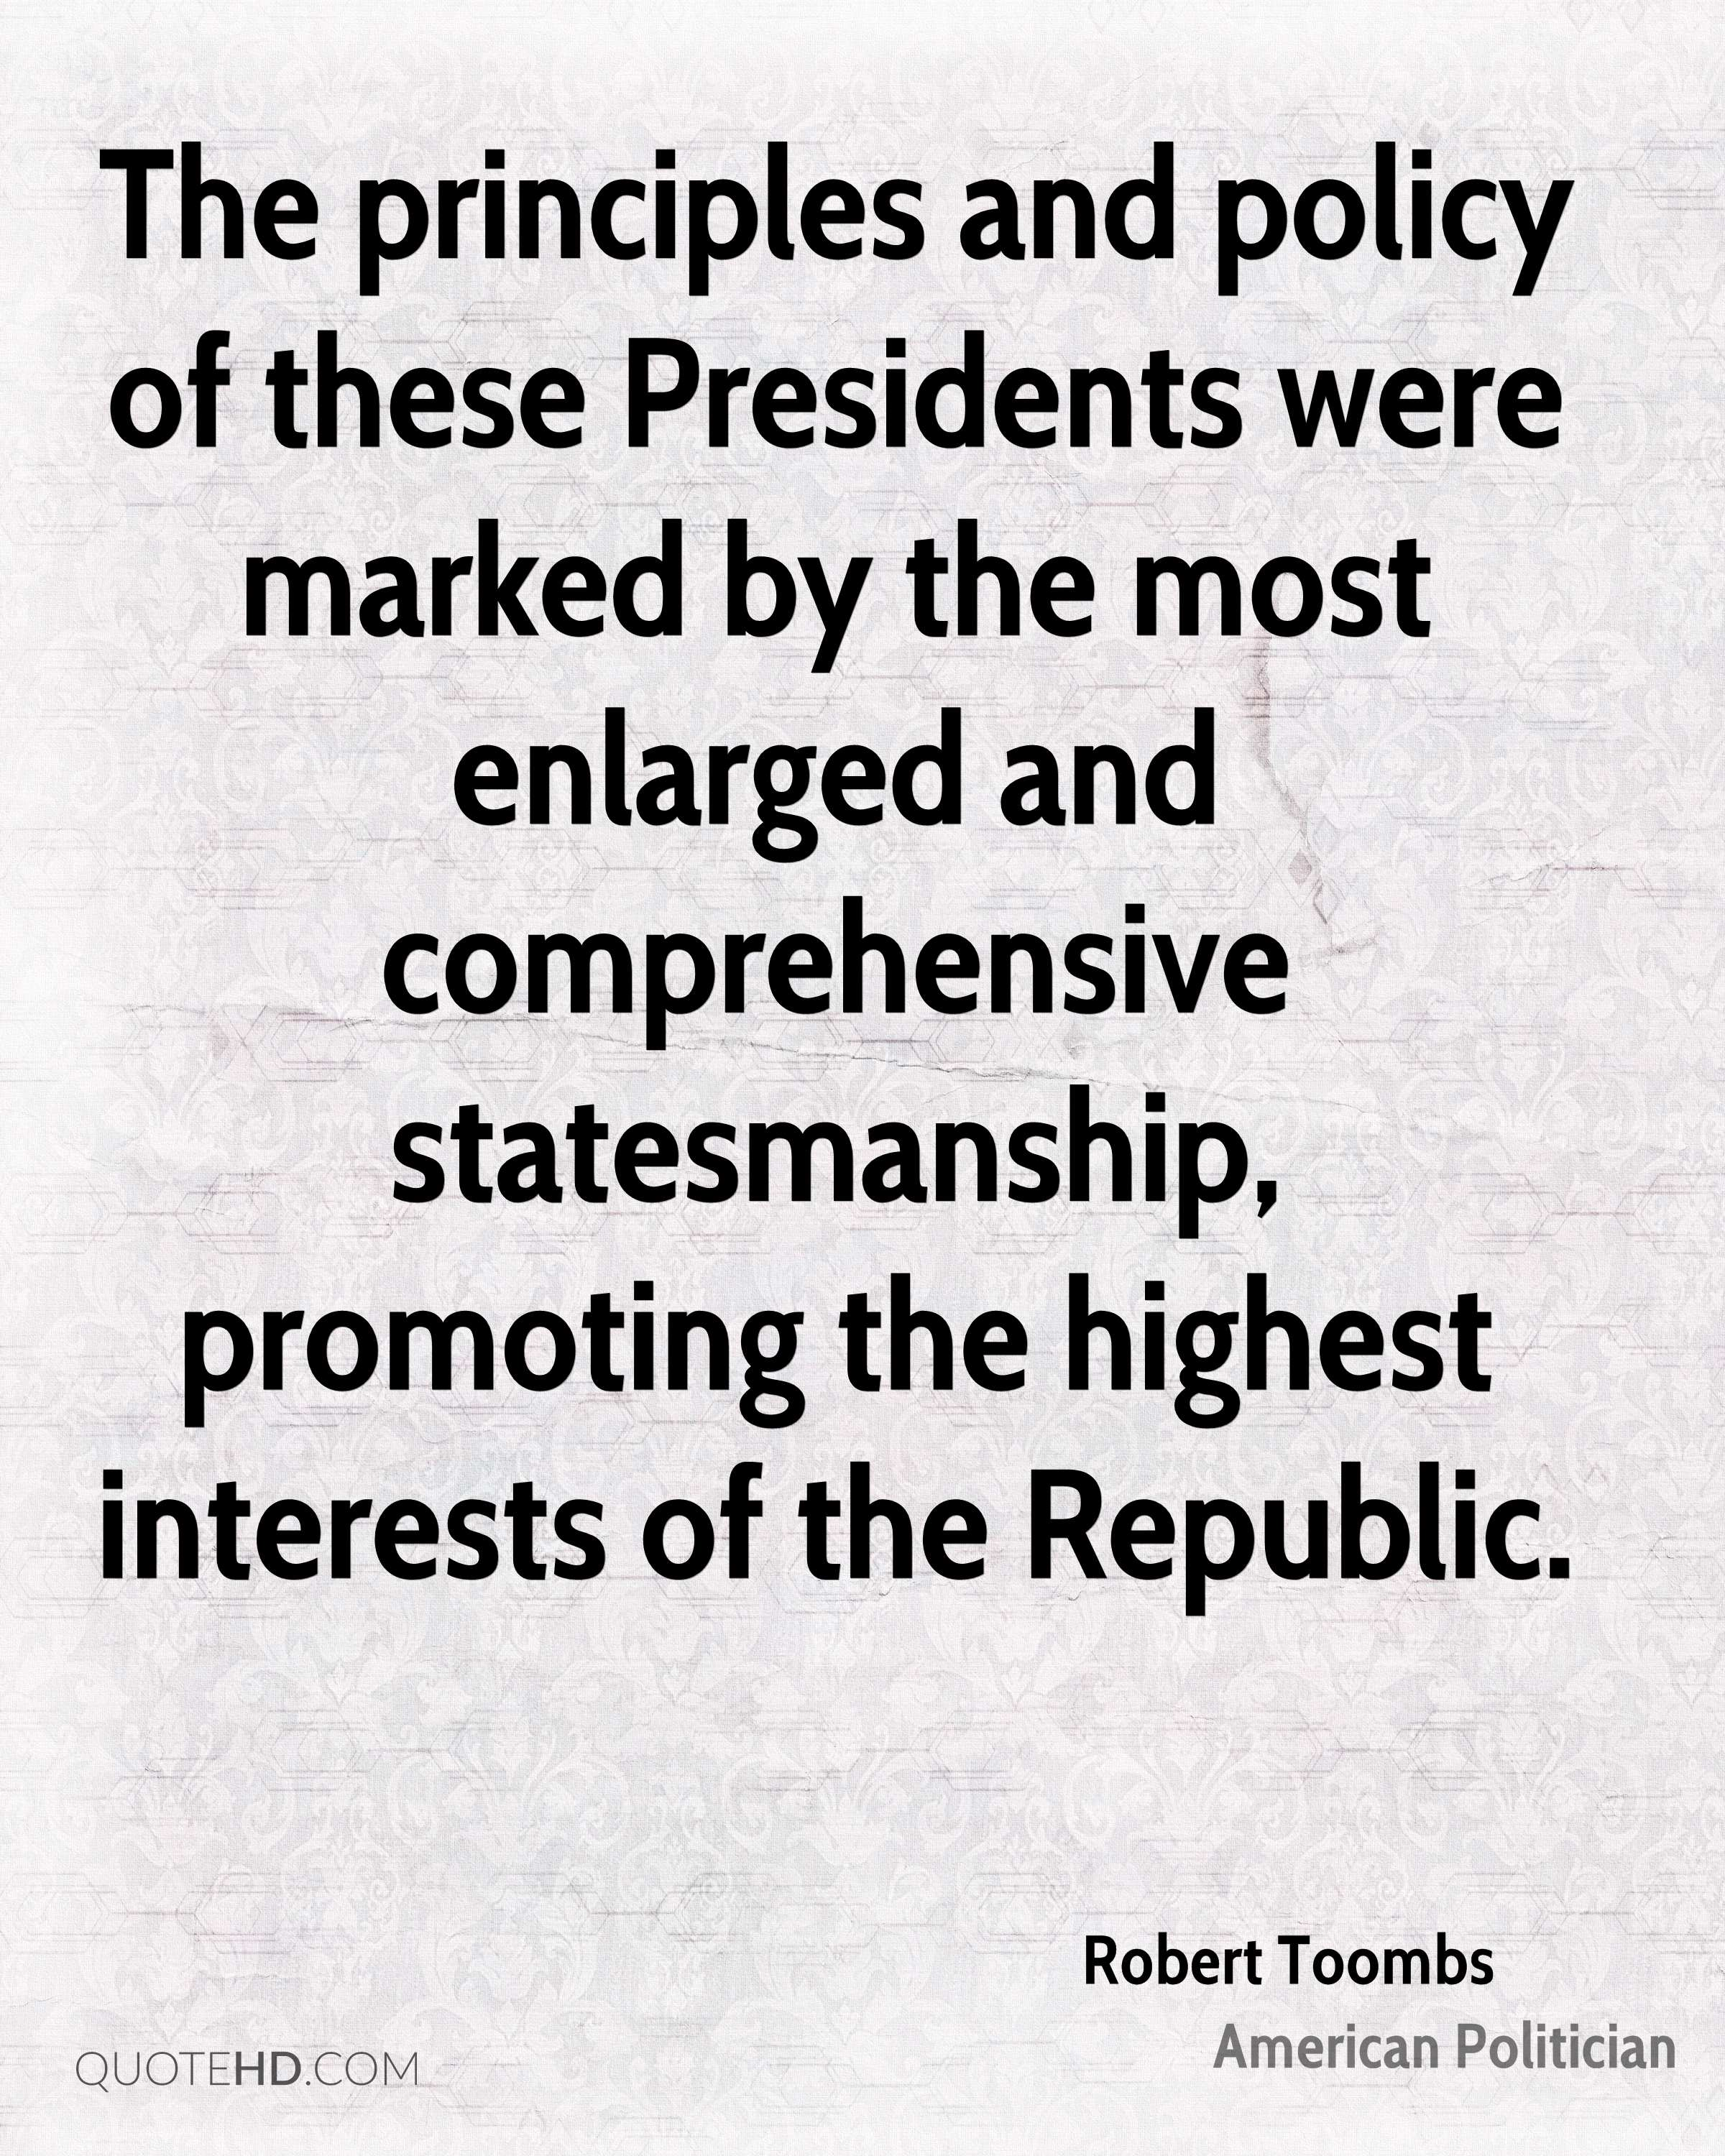 The principles and policy of these Presidents were marked by the most enlarged and comprehensive statesmanship, promoting the highest interests of the Republic.